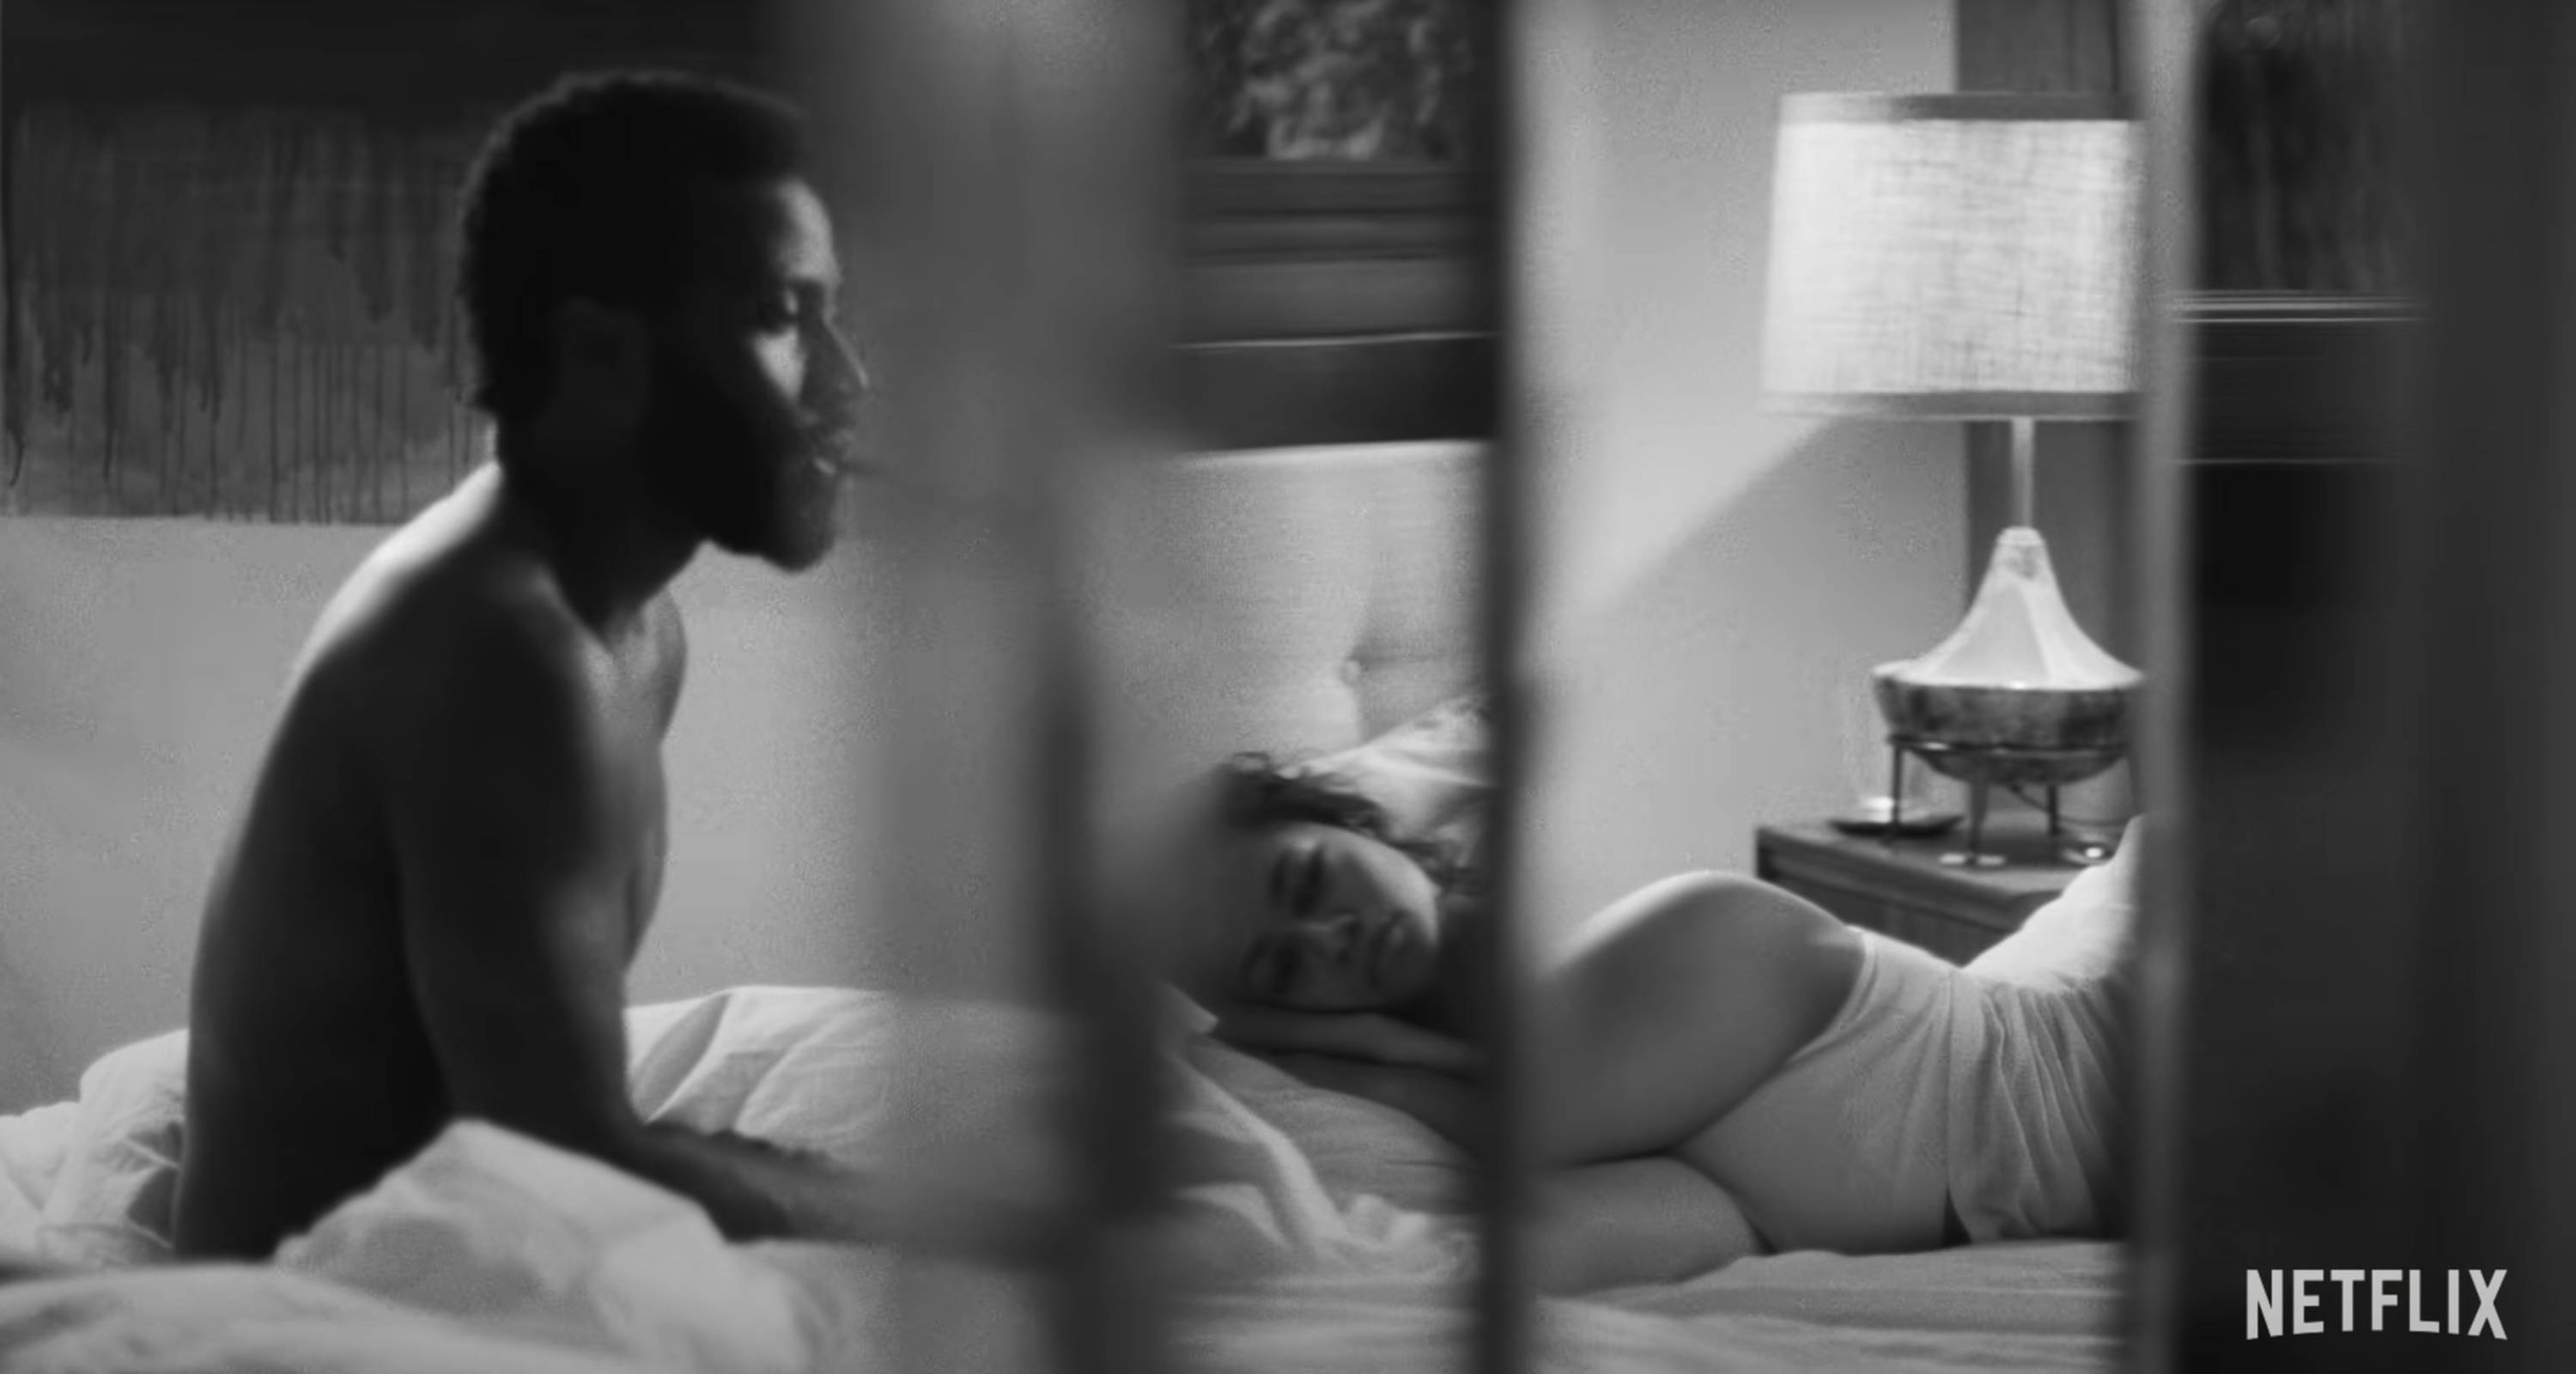 The filmmaker and his girlfriend in a bedroom